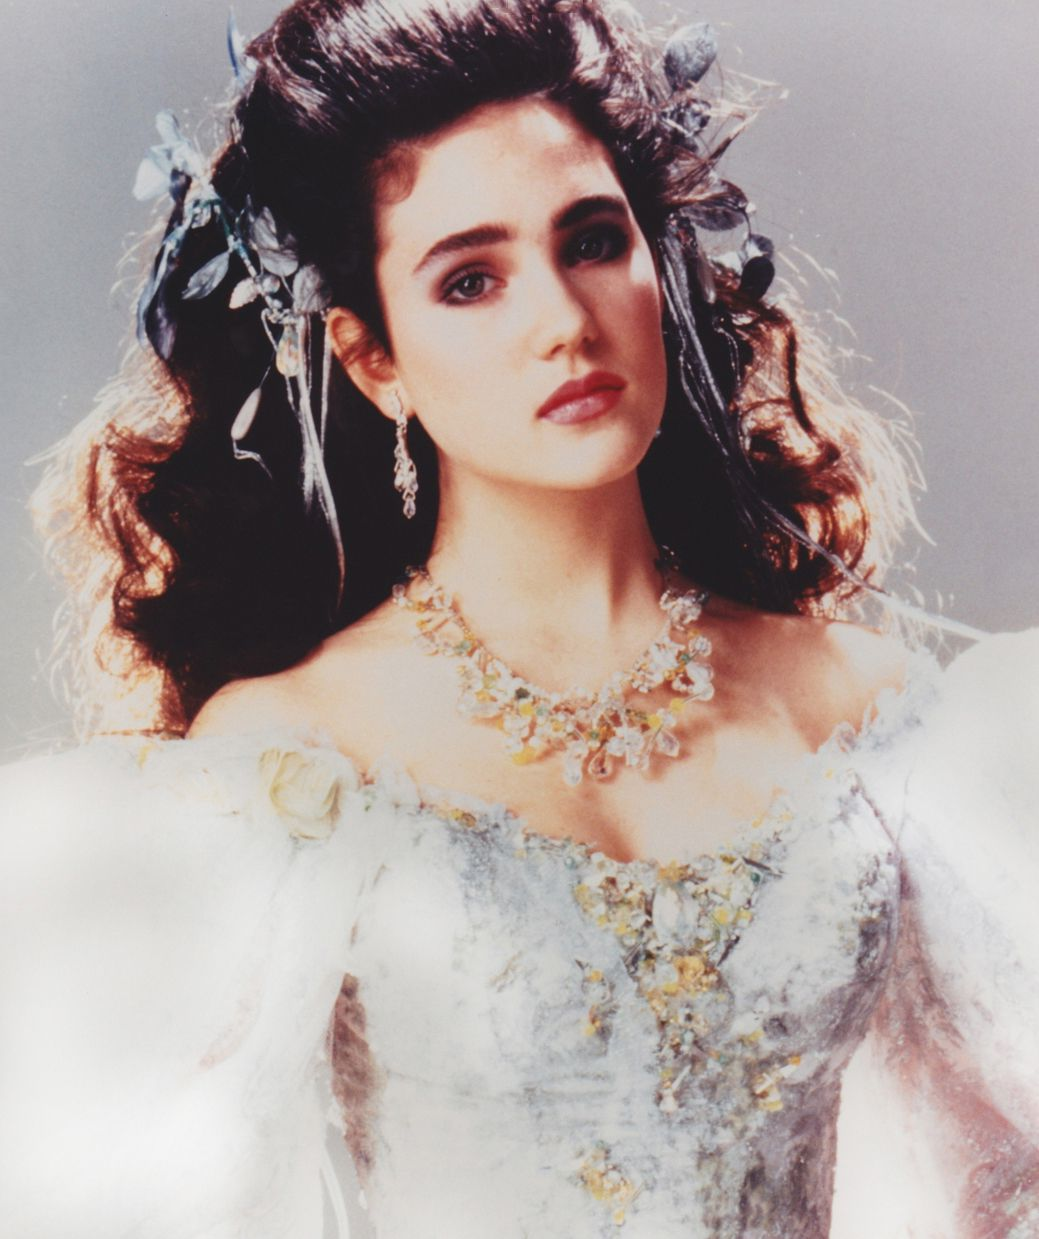 1986 - Jennifer Connelly as Sarah in Labyrinth ... Labyrinth 1986 Sarah